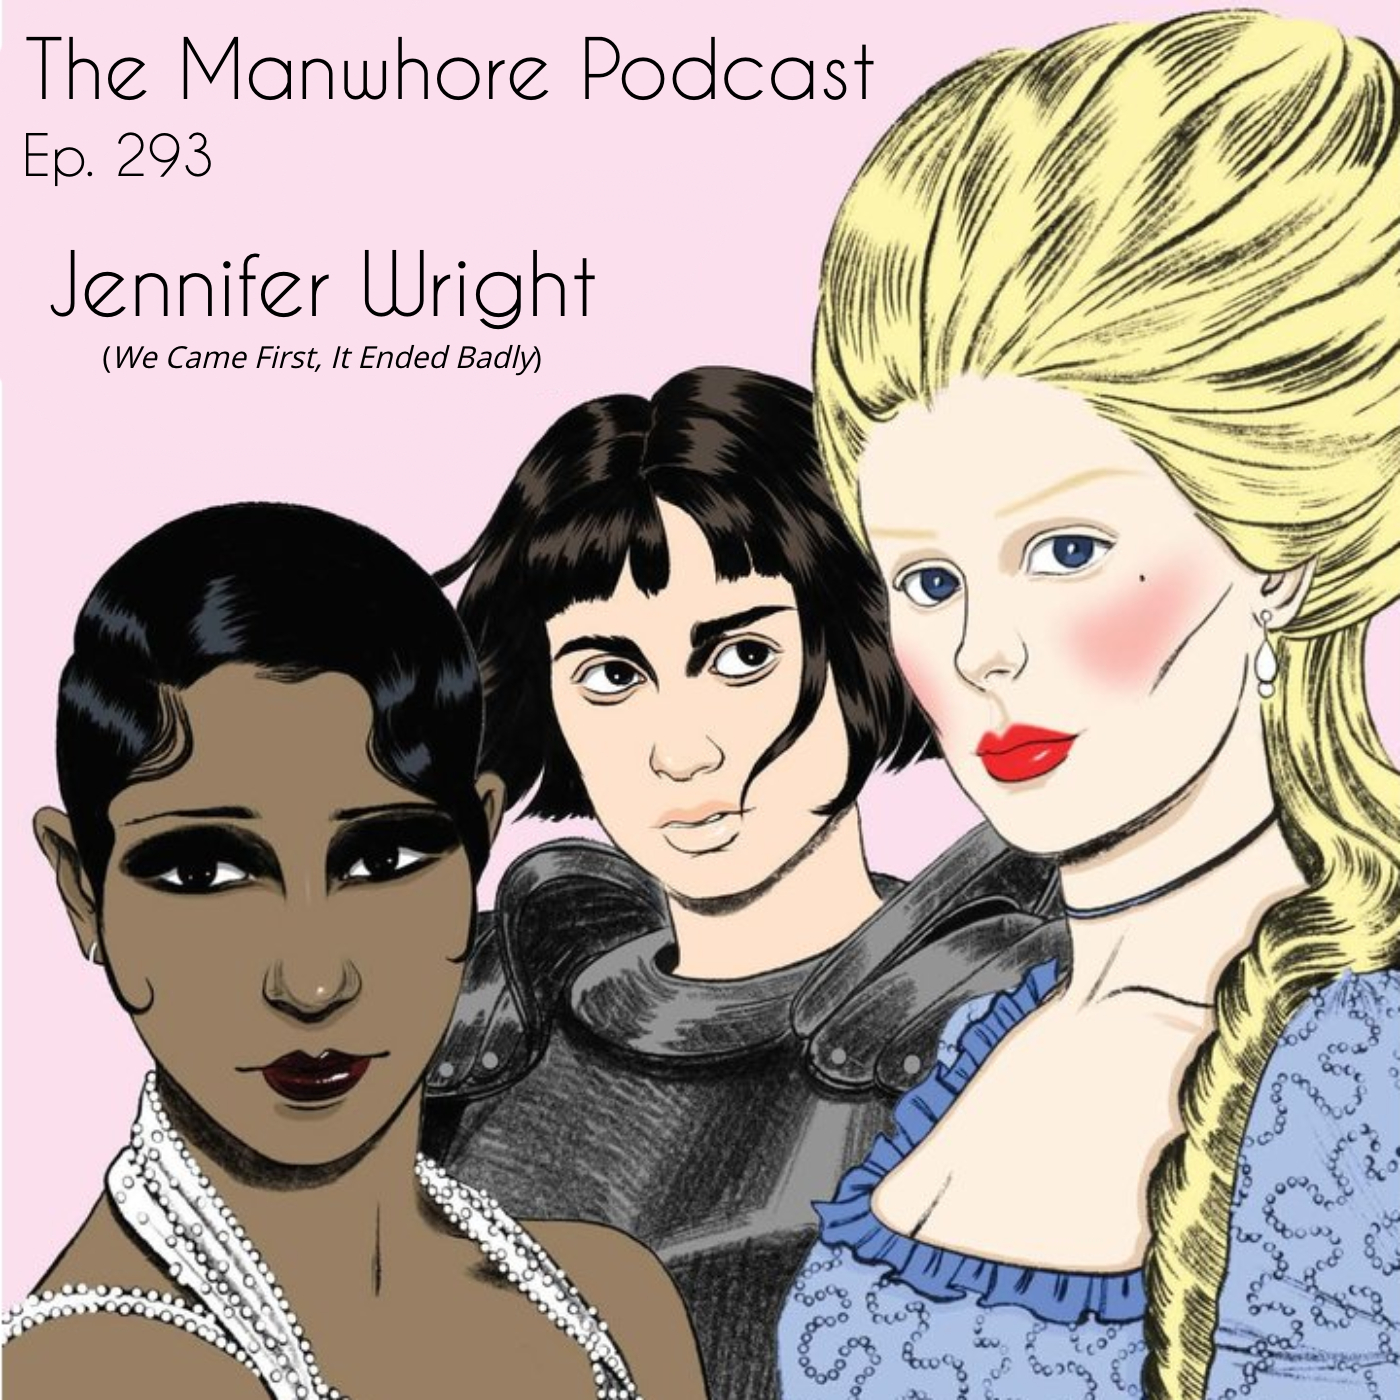 The Manwhore Podcast: A Sex-Positive Quest - Ep. 293: First Date F*ck-ups & Historical Horndogs